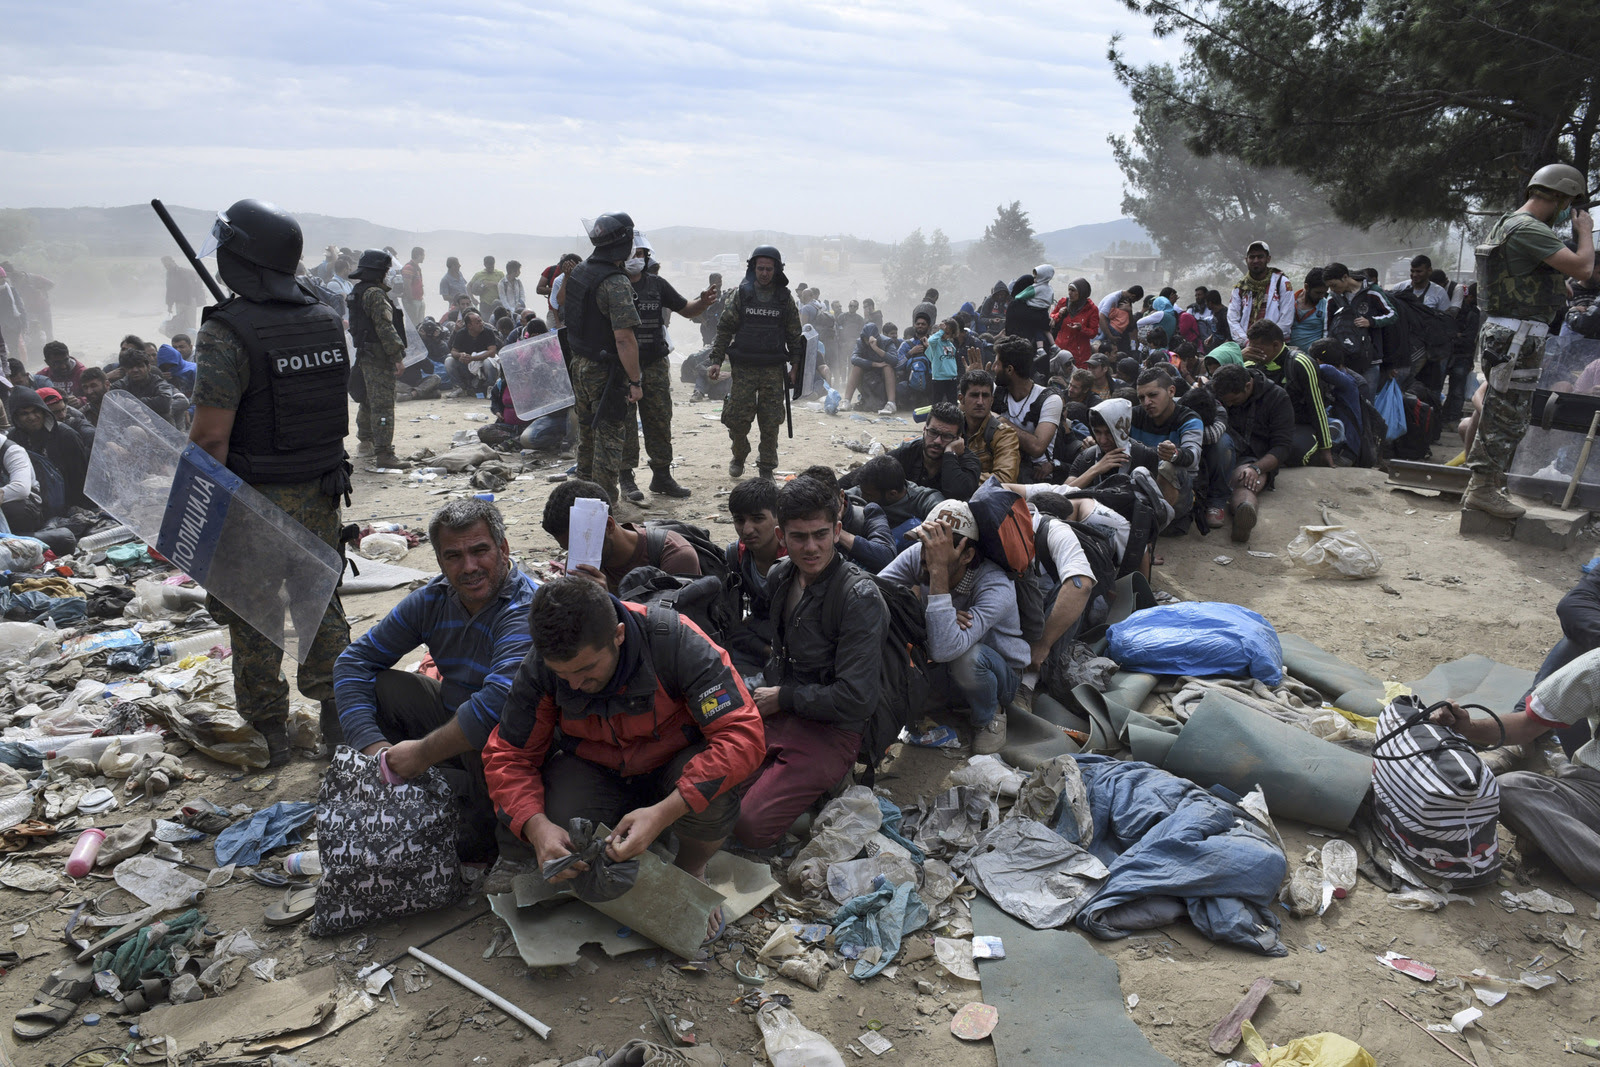 Refugees and migrants wait to cross the border from the northern Greek village of Idomeni to southern Macedonia, Monday, Sept. 7, 2015. Greece has borne the brunt of a massive refugee and migration flow of people heading into the European Union. (AP Photo/Giannis Papanikos)